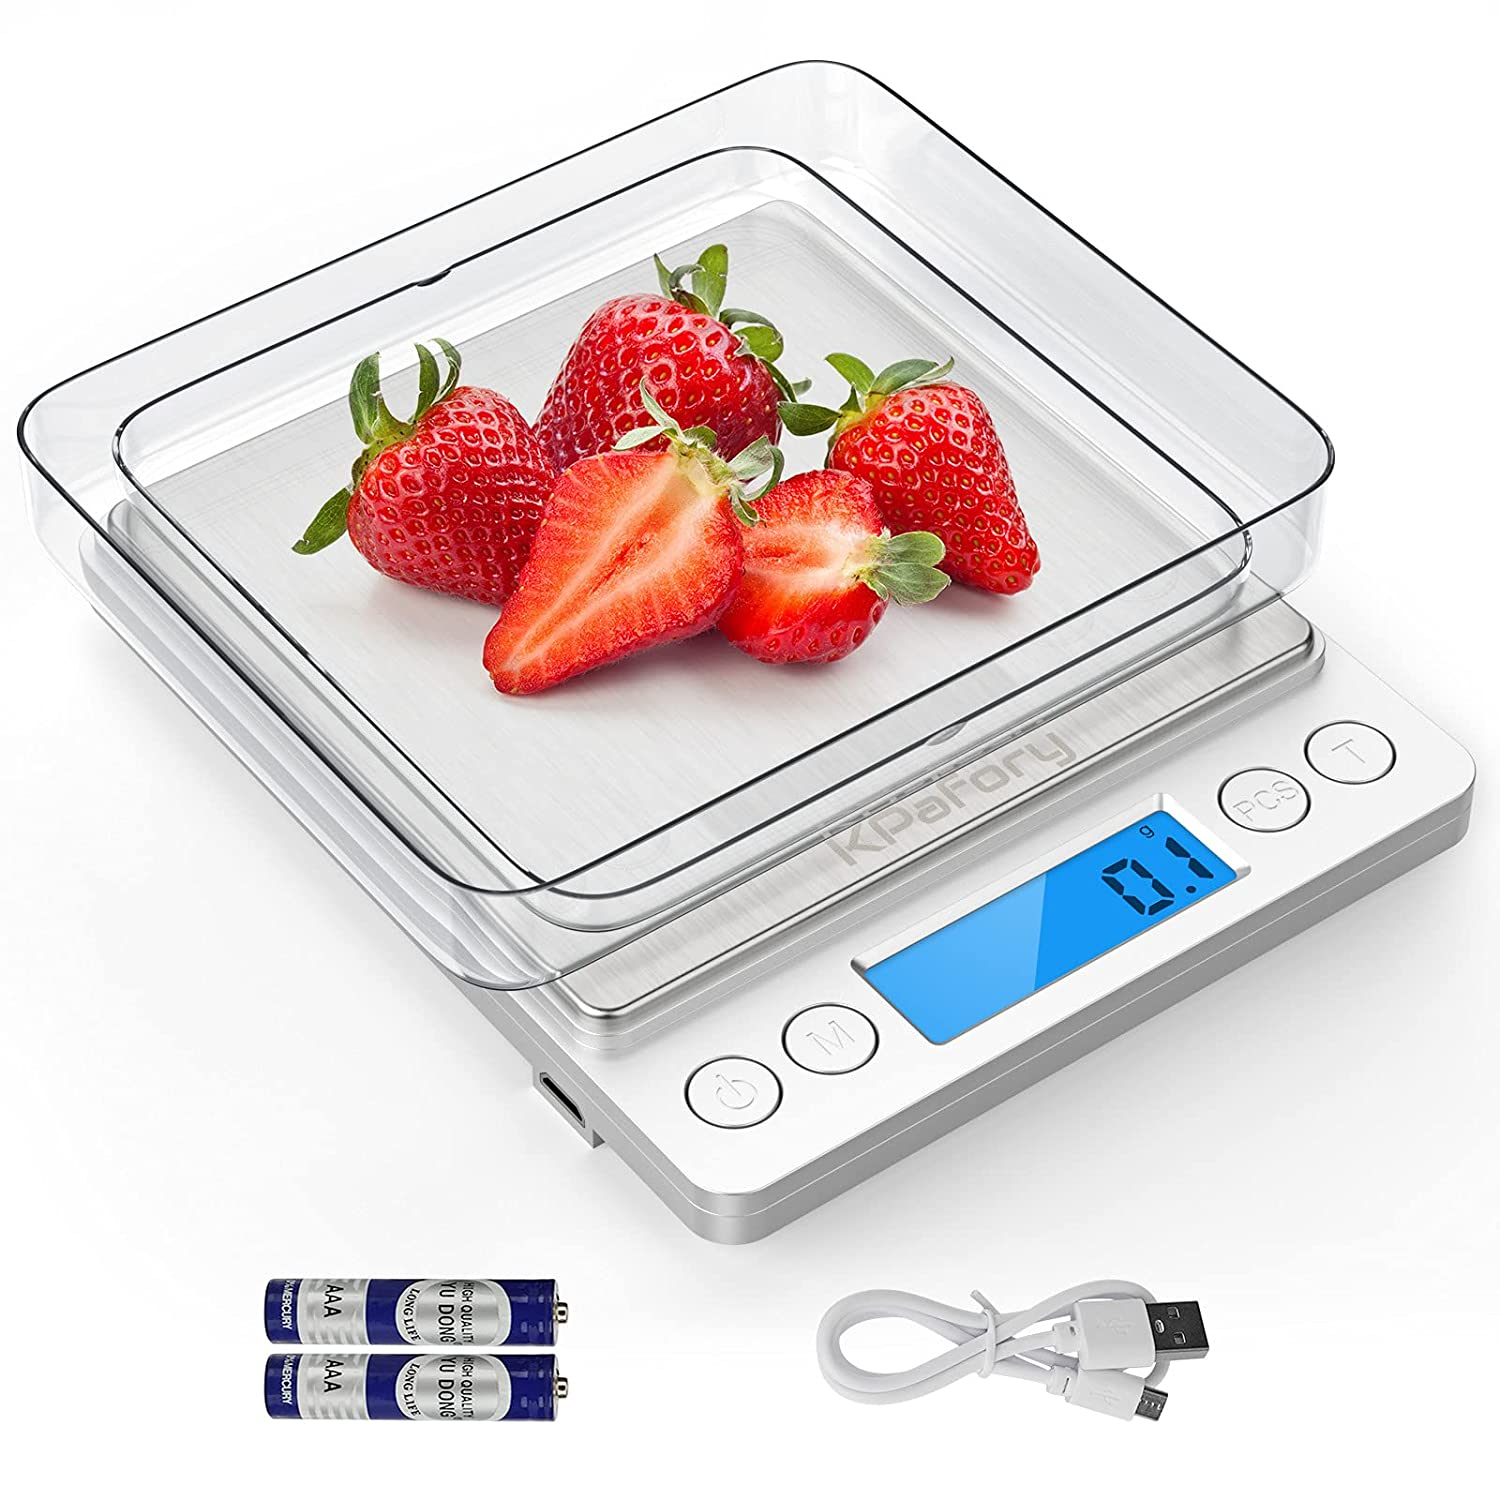 USB Scale Kitchen, KPafory Digital Kitchen Scale with High Precision 3000g/ 0.1g, Stainless Steel oz Food Scale with LCD Display, 9 Units with Tare and PCS Function, Included Batteries and 2 Trays